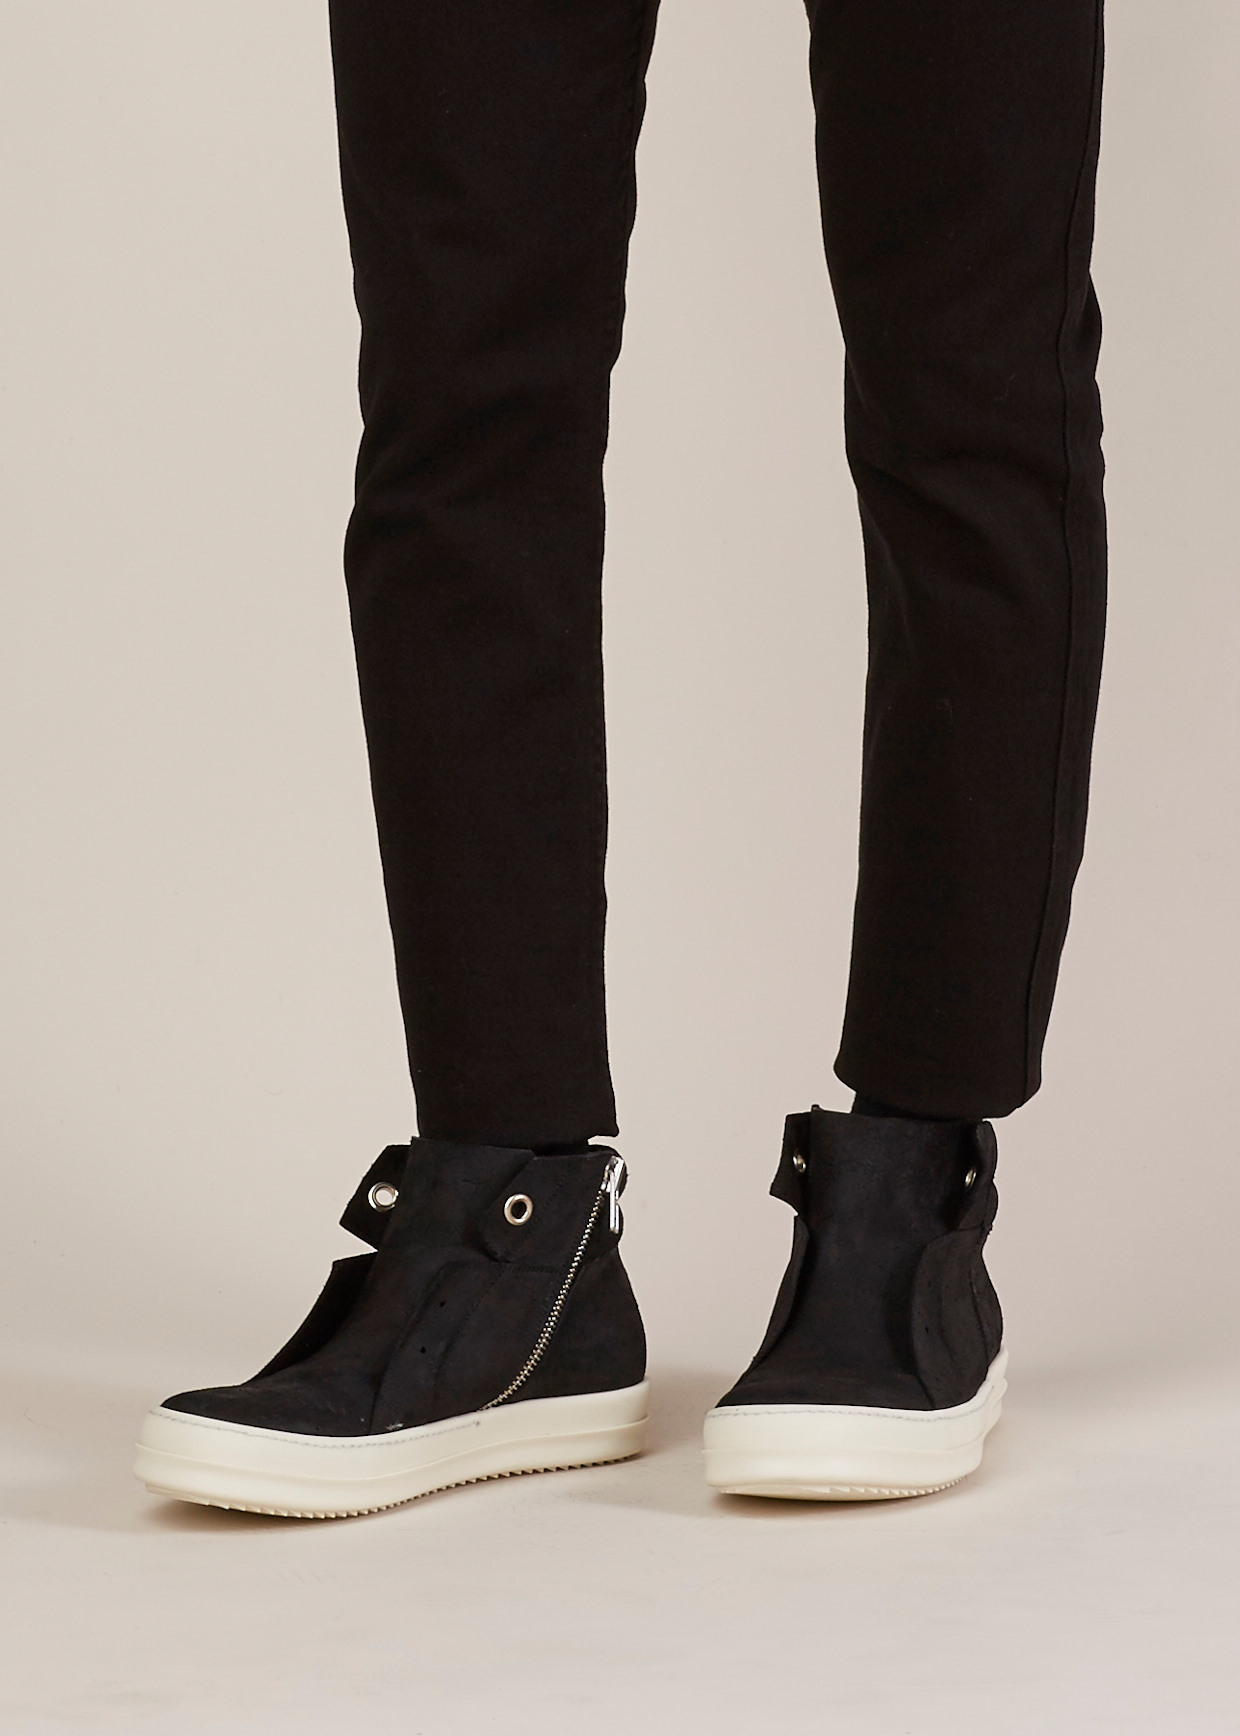 Cheap Price Wholesale Great Deals For Sale Island Dunk sneakers - Black Rick Owens Comfortable Sale Online Supply Online r5SRrHkY